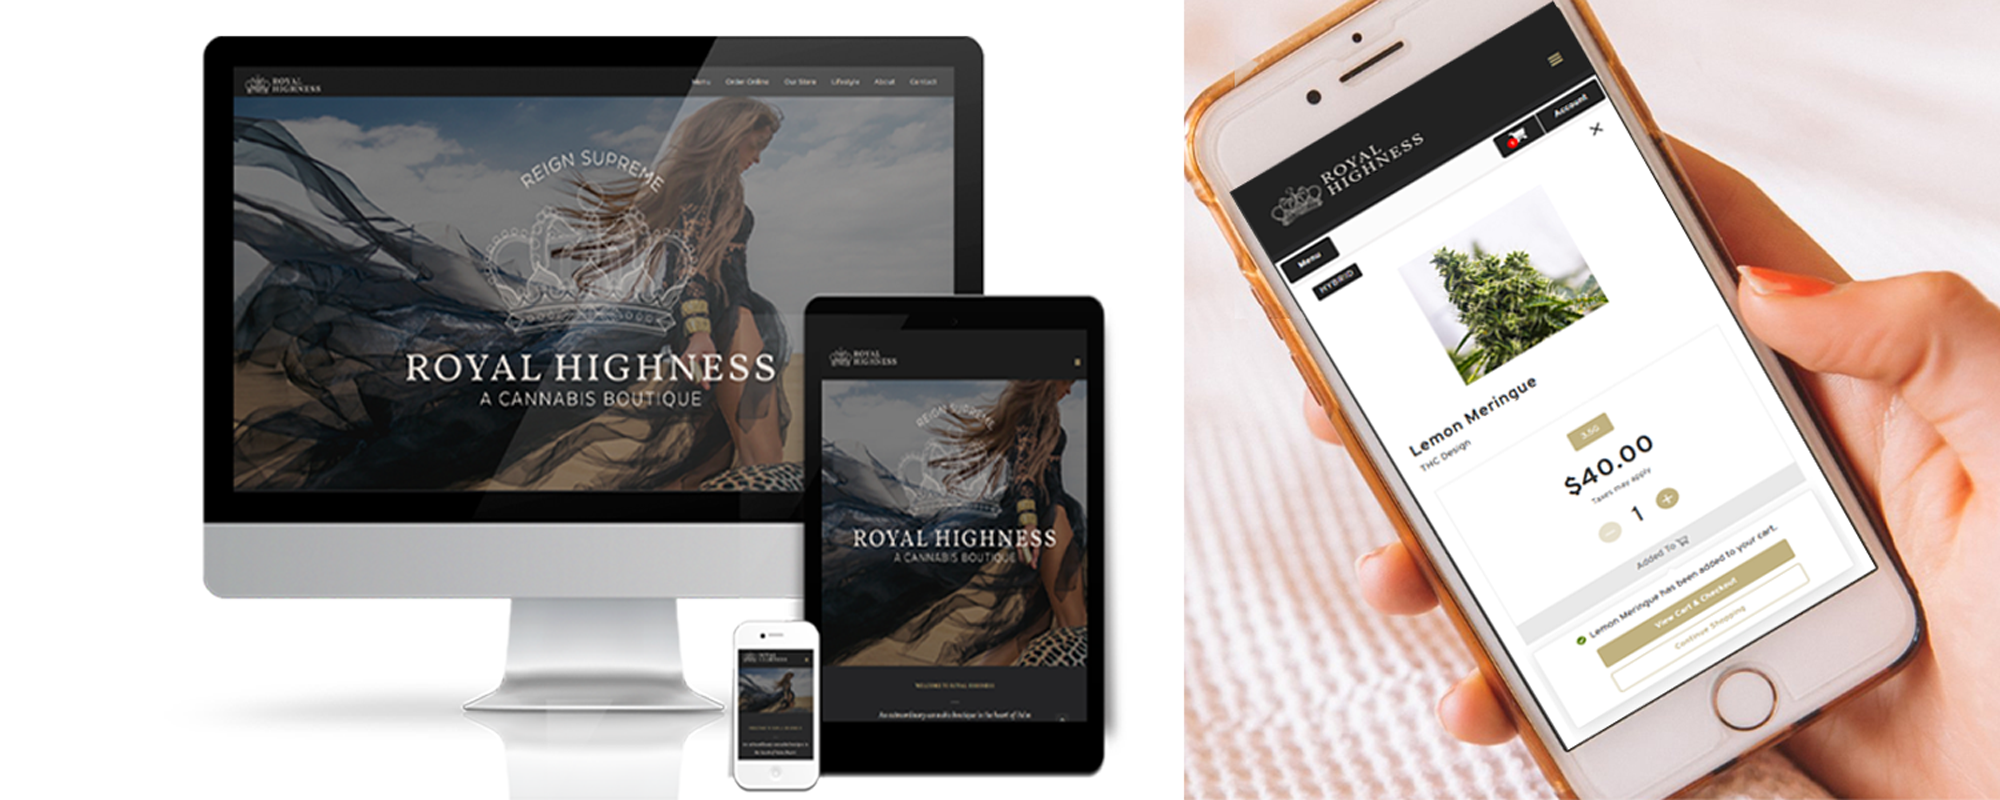 Royal Highness web design